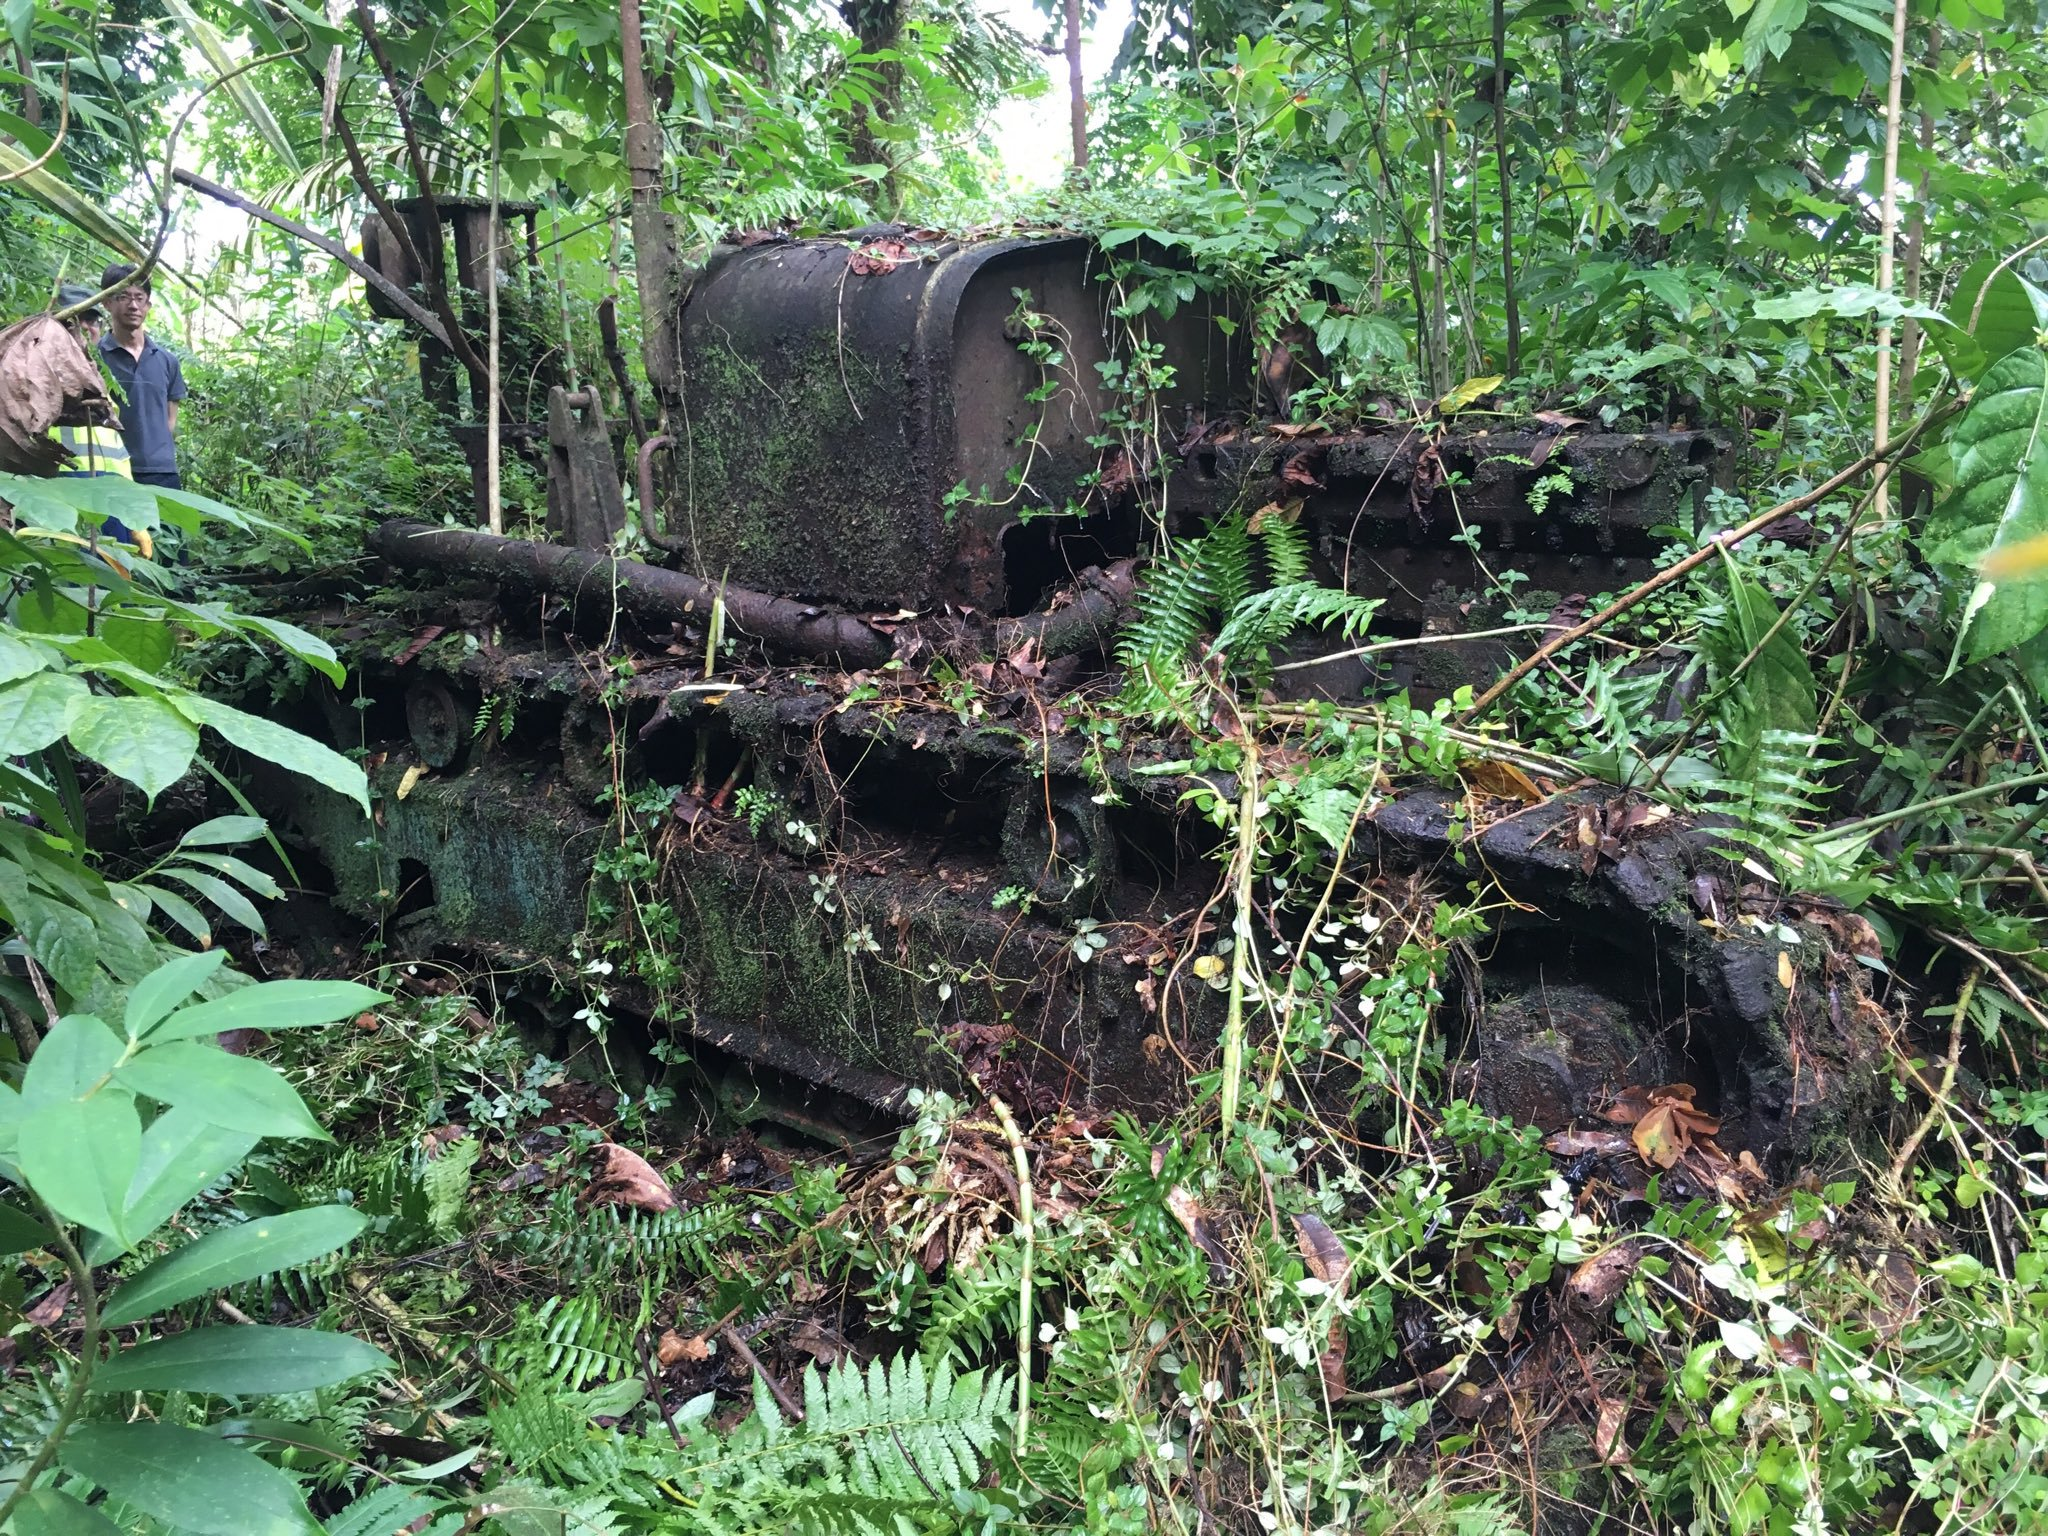 The tractor in the forest reminds locals and tourists of the military events of the last century.